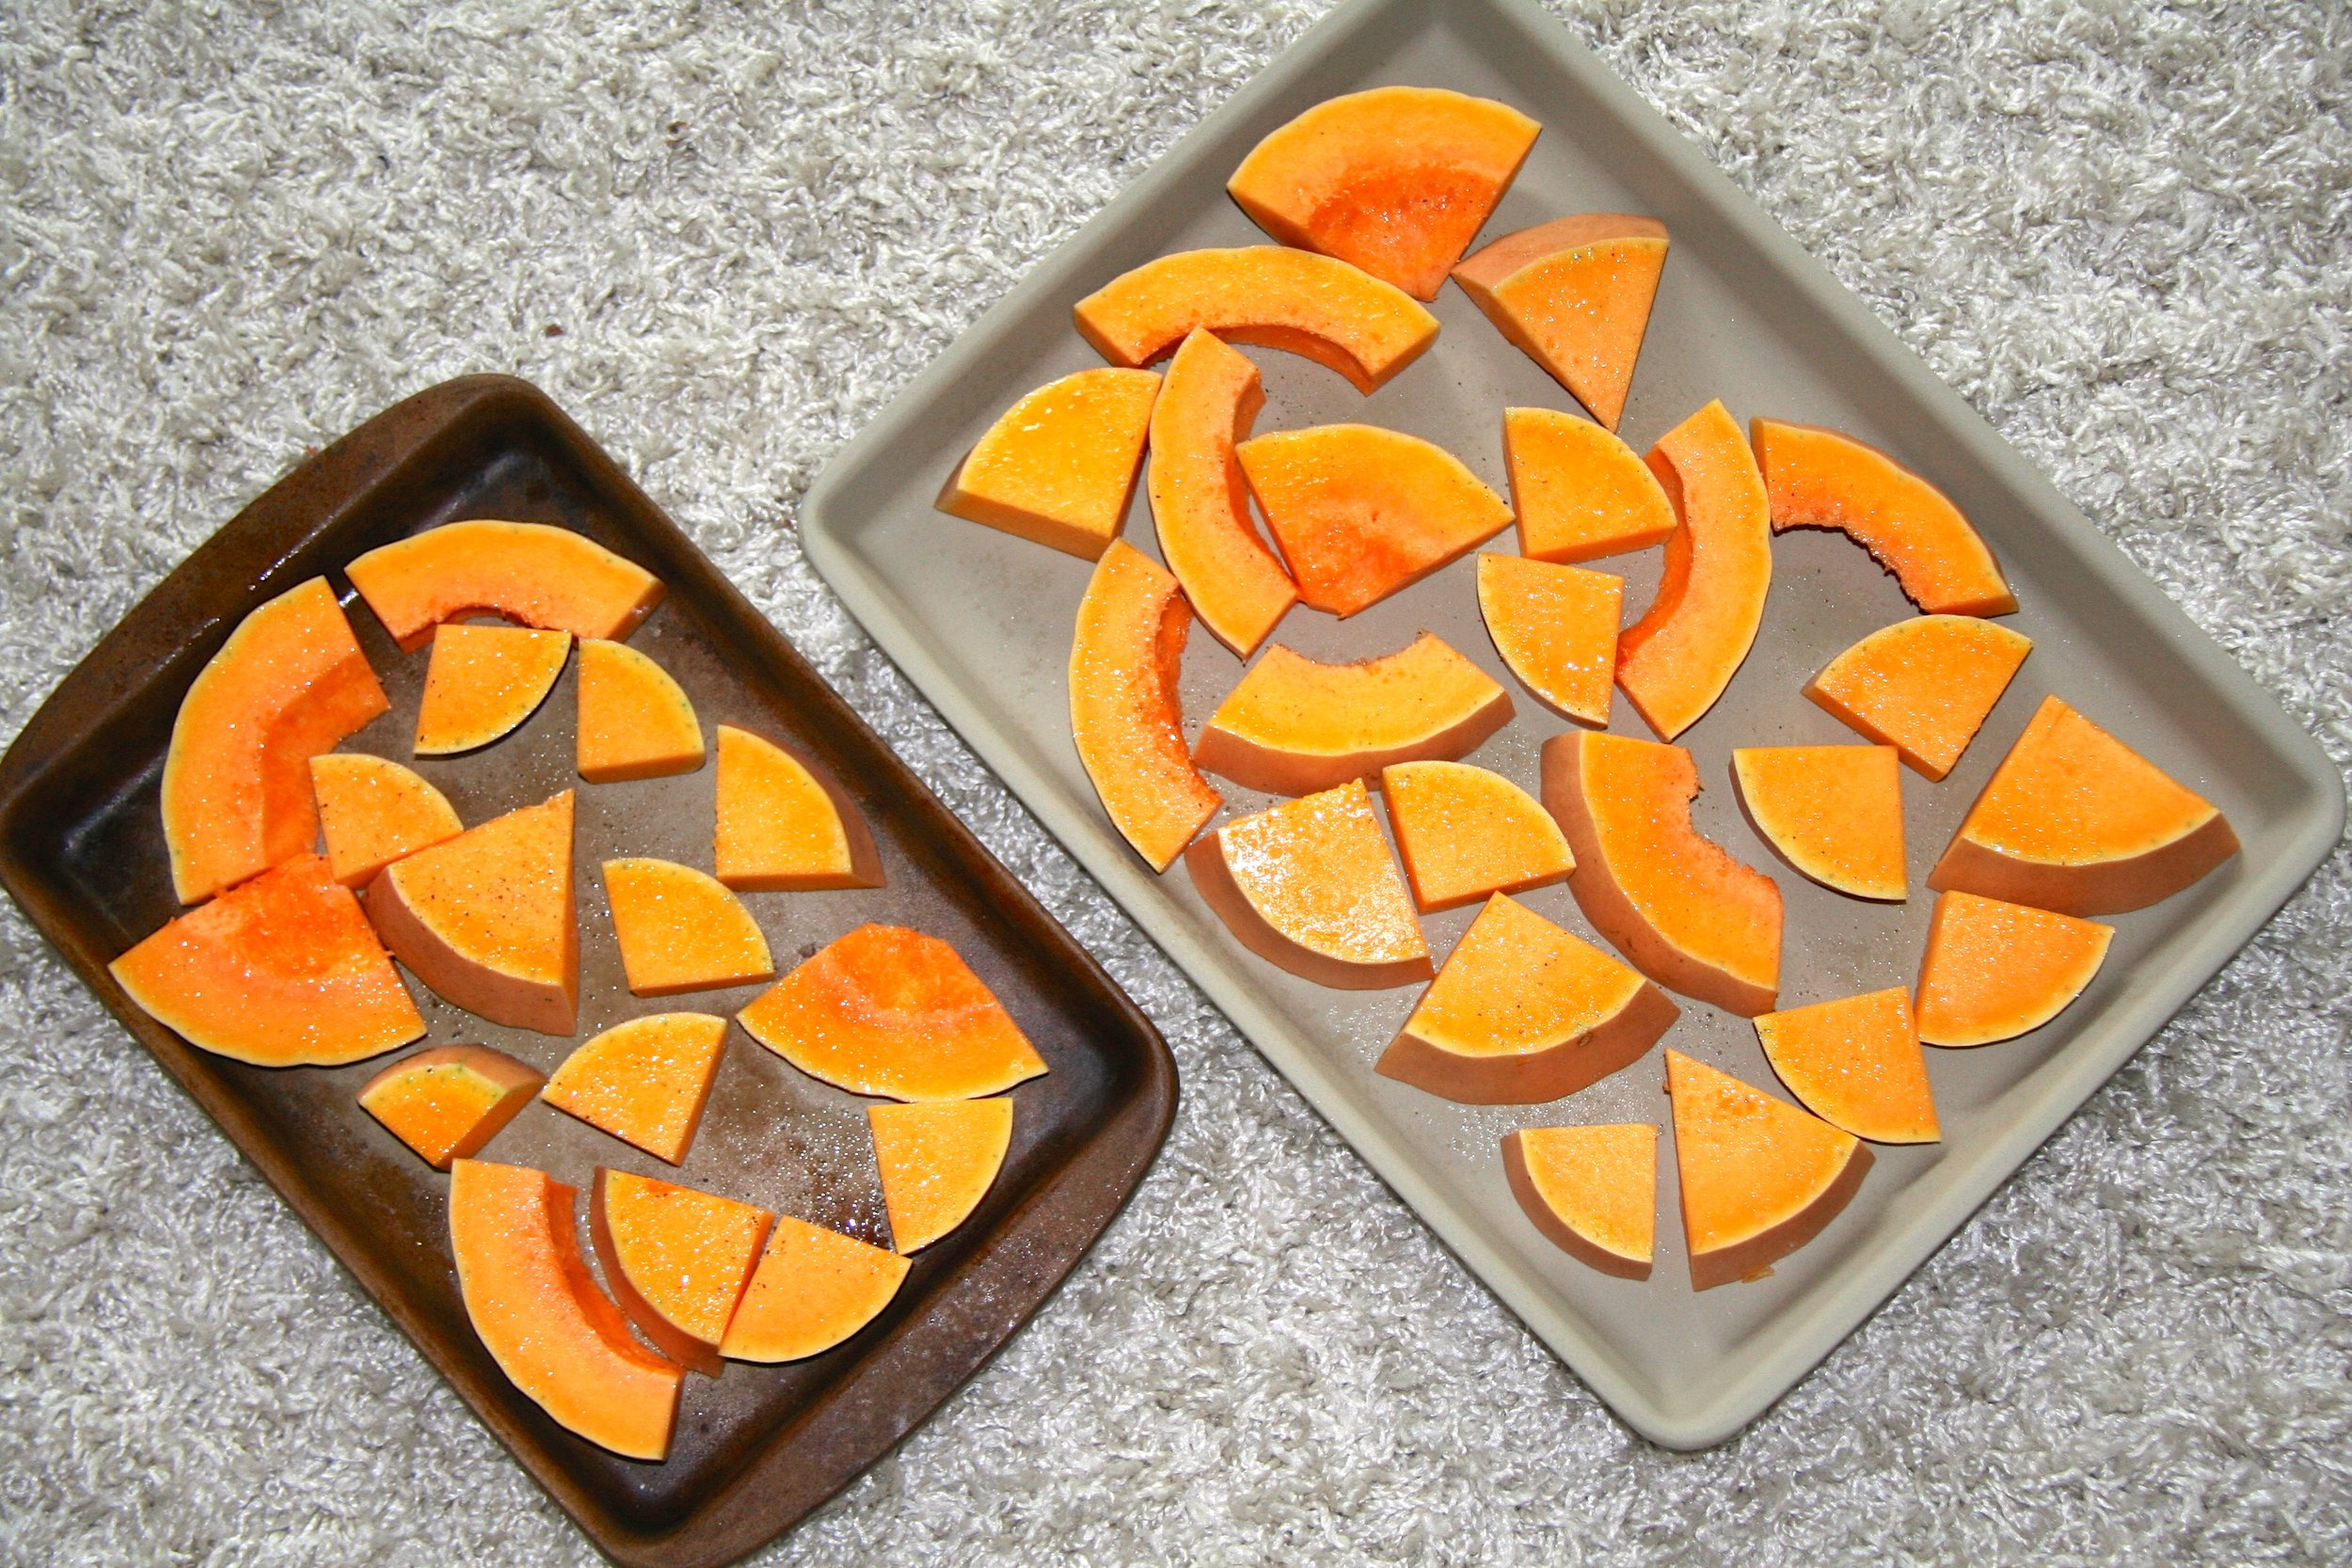 Butternut Squash all cut up and ready to roast!